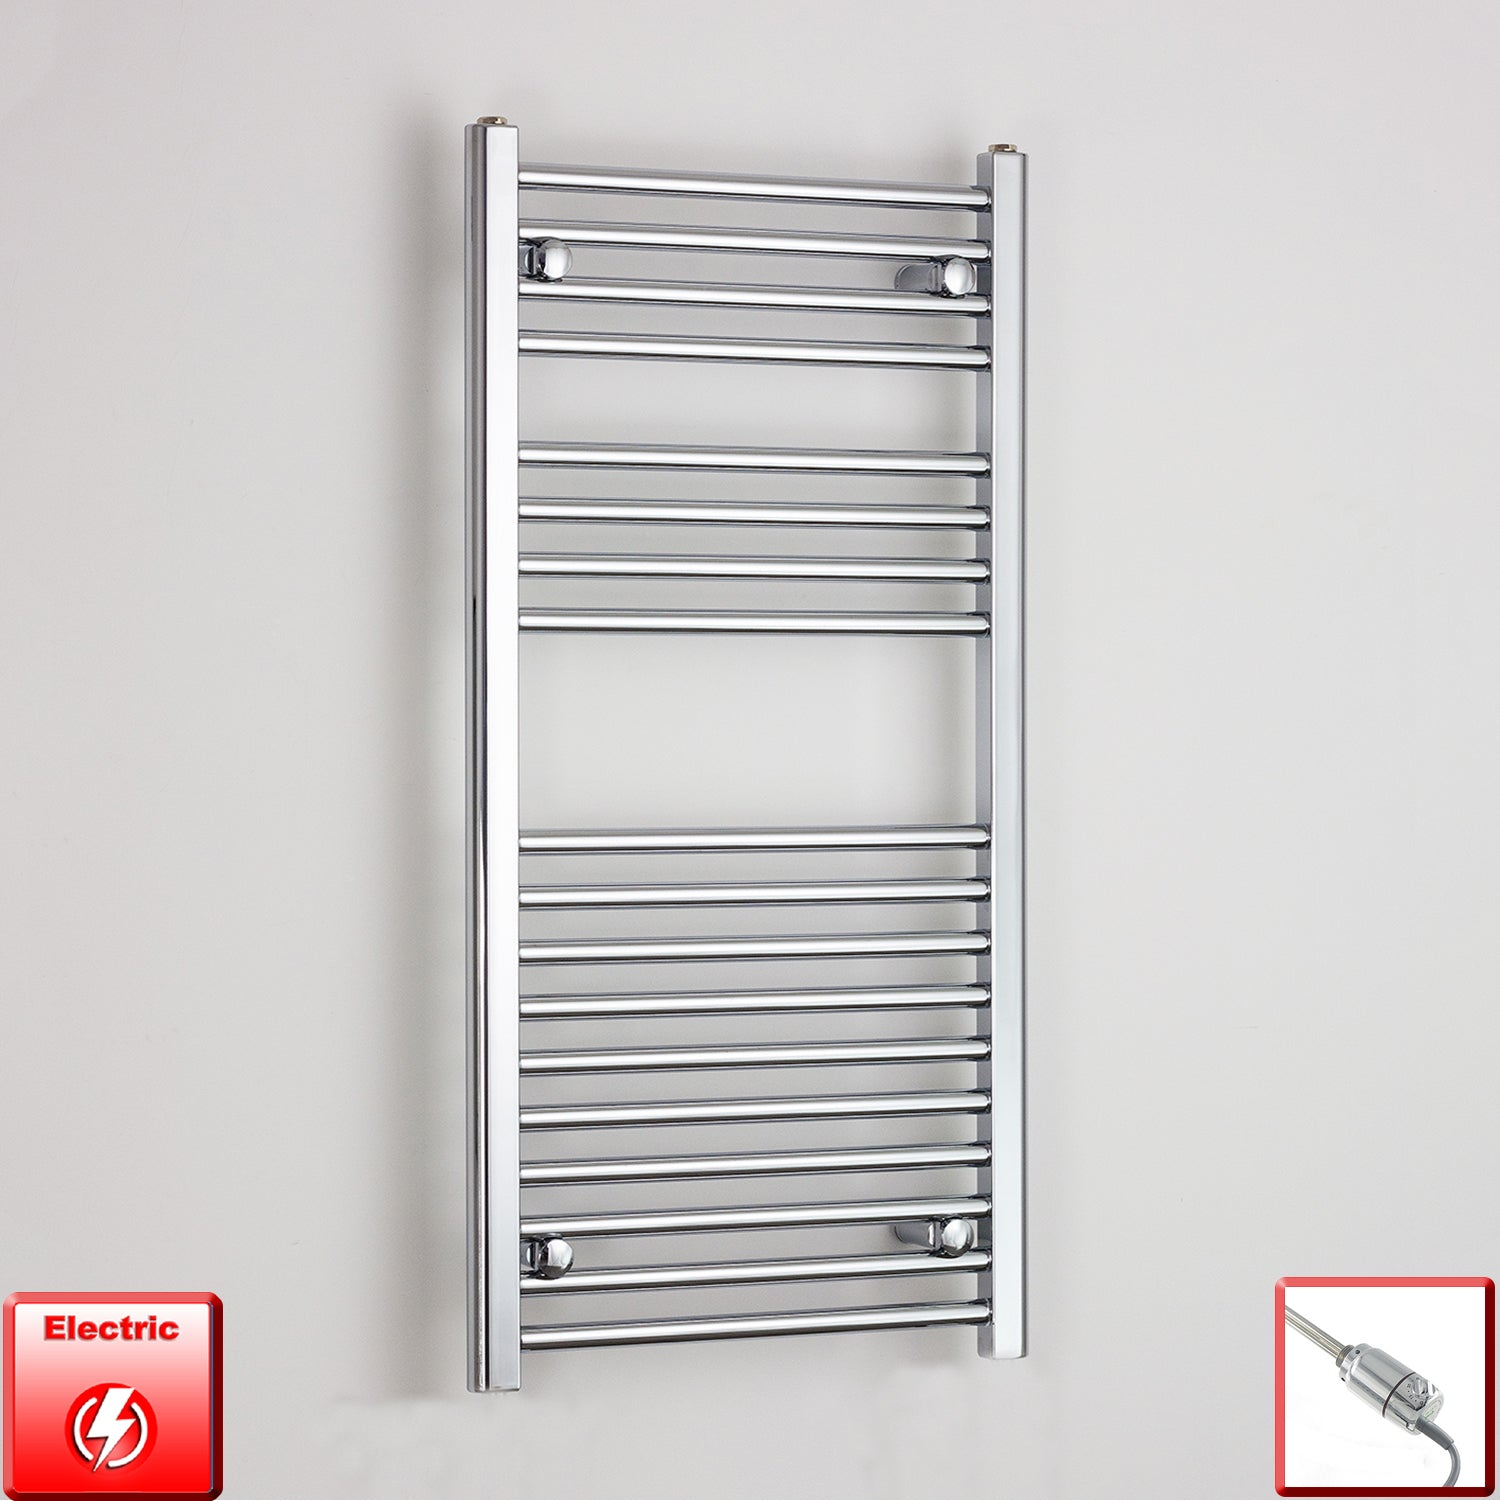 600mm Wide 1000mm High Pre-Filled Chrome Electric Towel Rail Radiator With Thermostatic GT Element